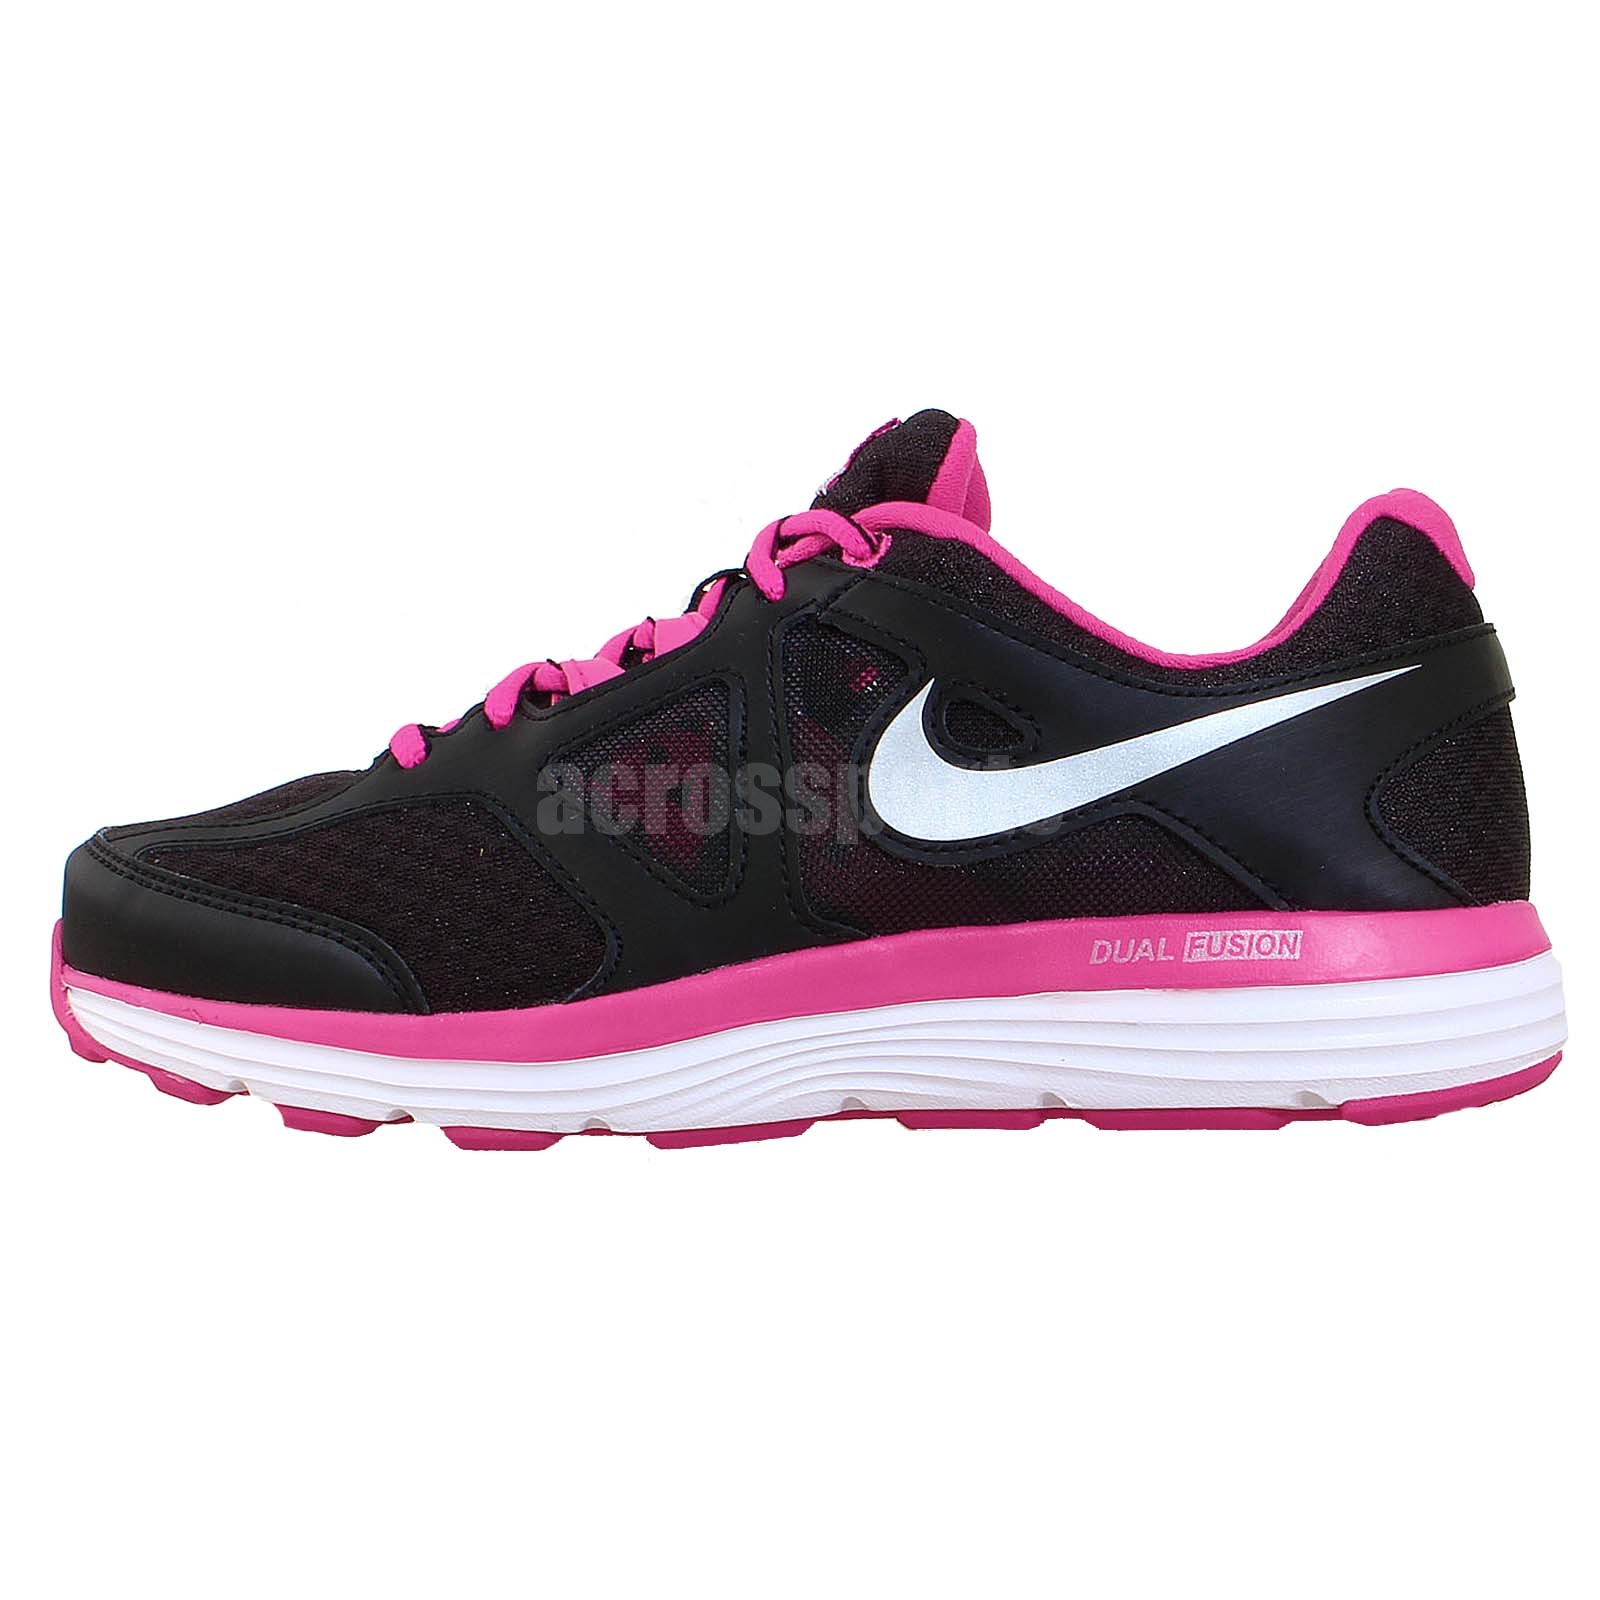 nike wmns dual fusion lite 2 msl black vivid pink silver womens running shoes ebay. Black Bedroom Furniture Sets. Home Design Ideas